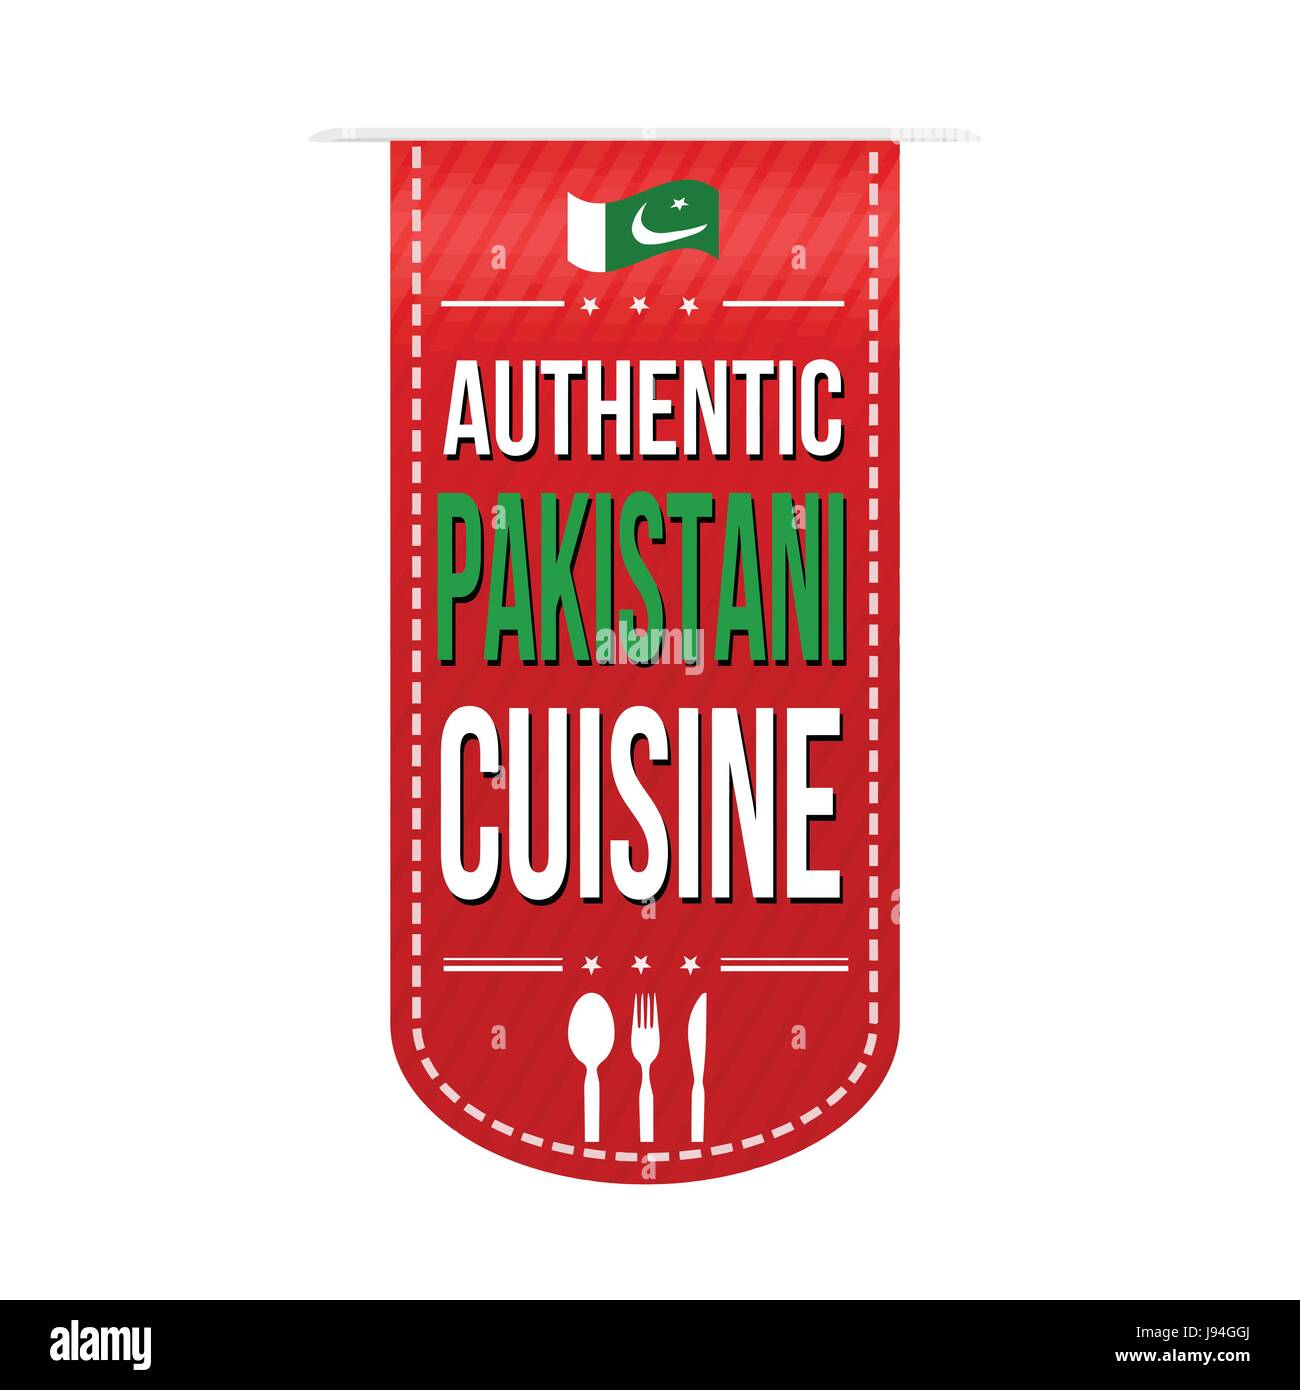 Authentic pakistani cuisine banner design over a white background, vector illustration - Stock Image